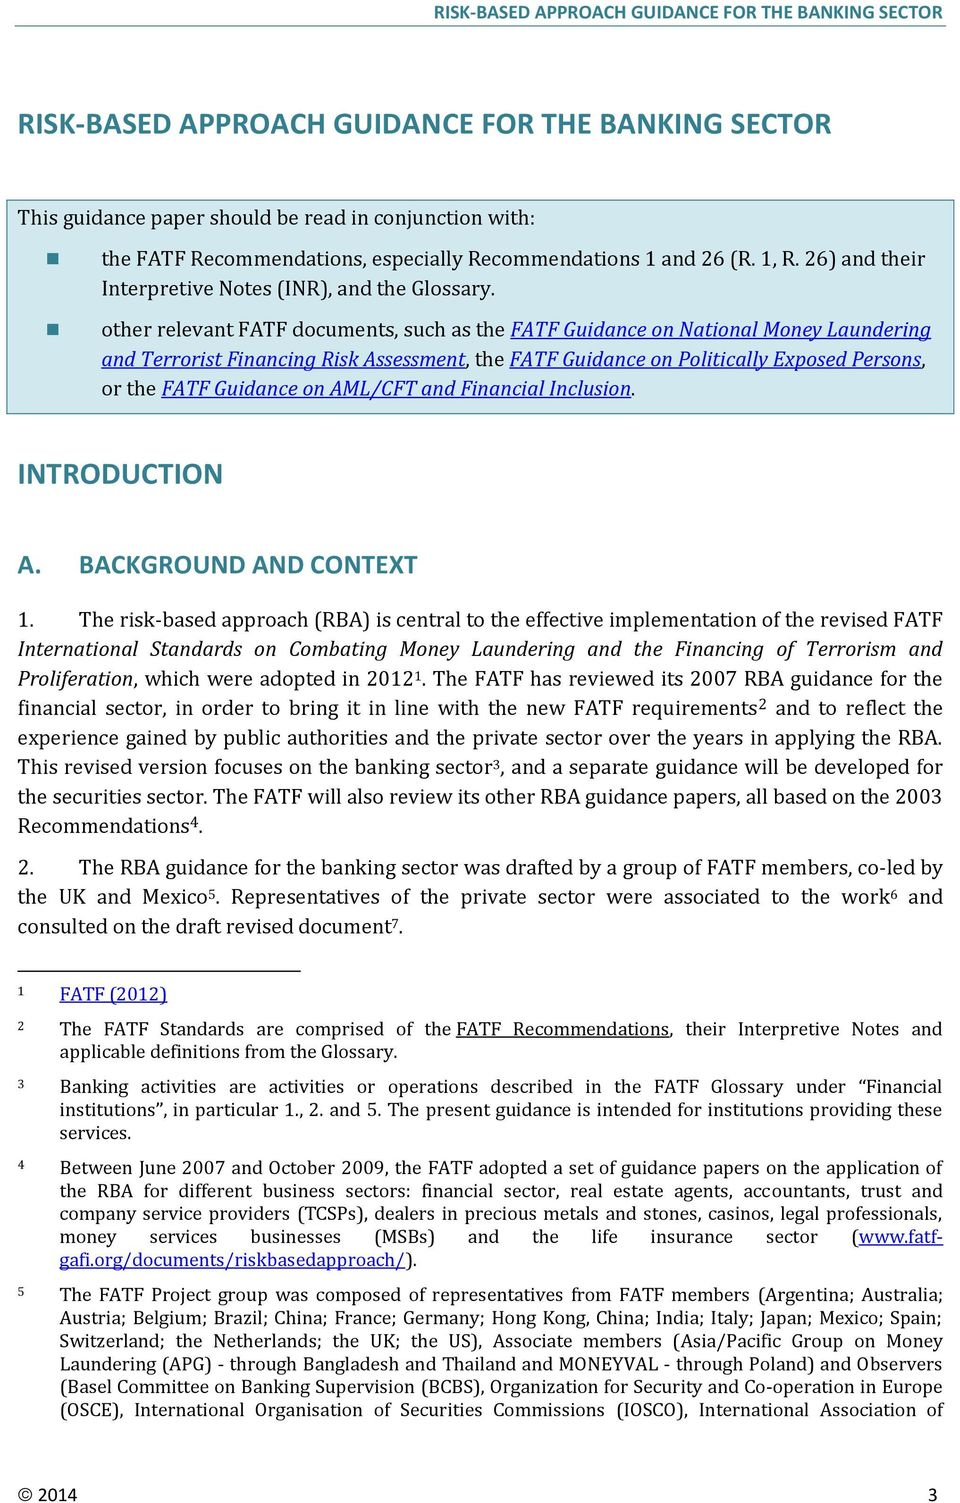 other relevant FATF documents, such as the FATF Guidance on National Money Laundering and Terrorist Financing Risk Assessment, the FATF Guidance on Politically Exposed Persons, or the FATF Guidance